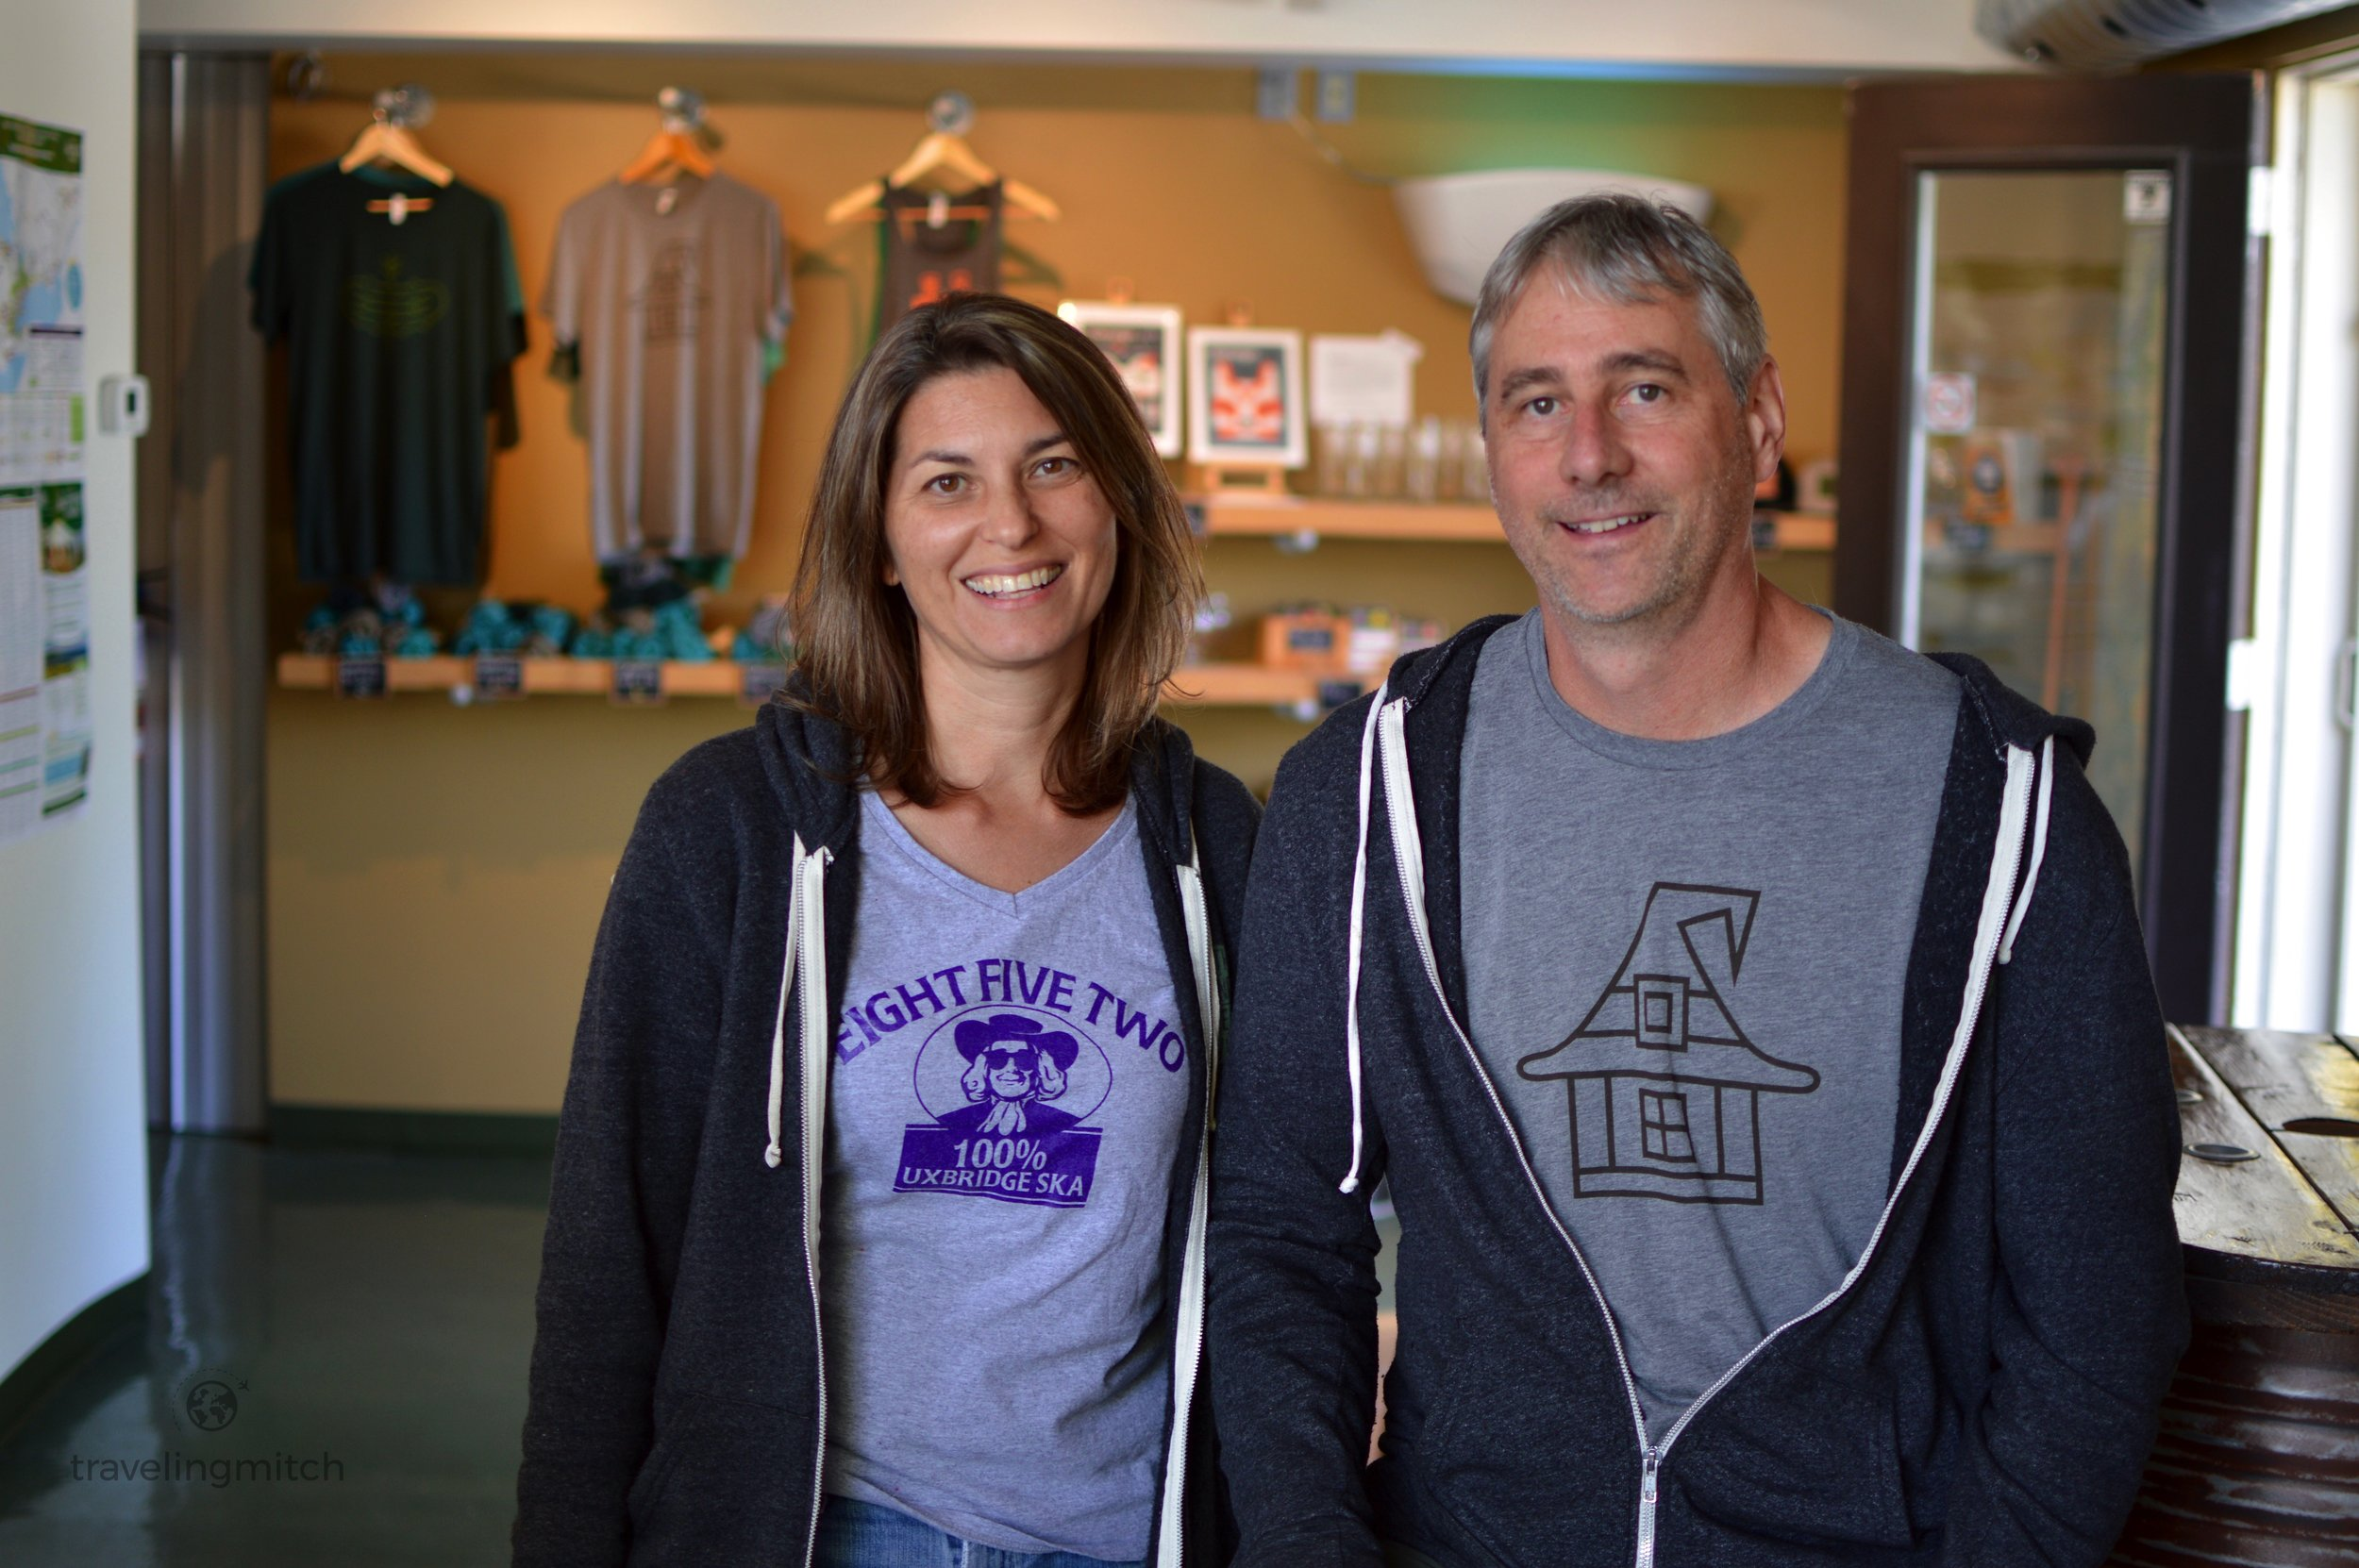 Rob Garrard and Joanne Richter are the owners of Second Wedge Brewing Company in Uxbridge, Ontario